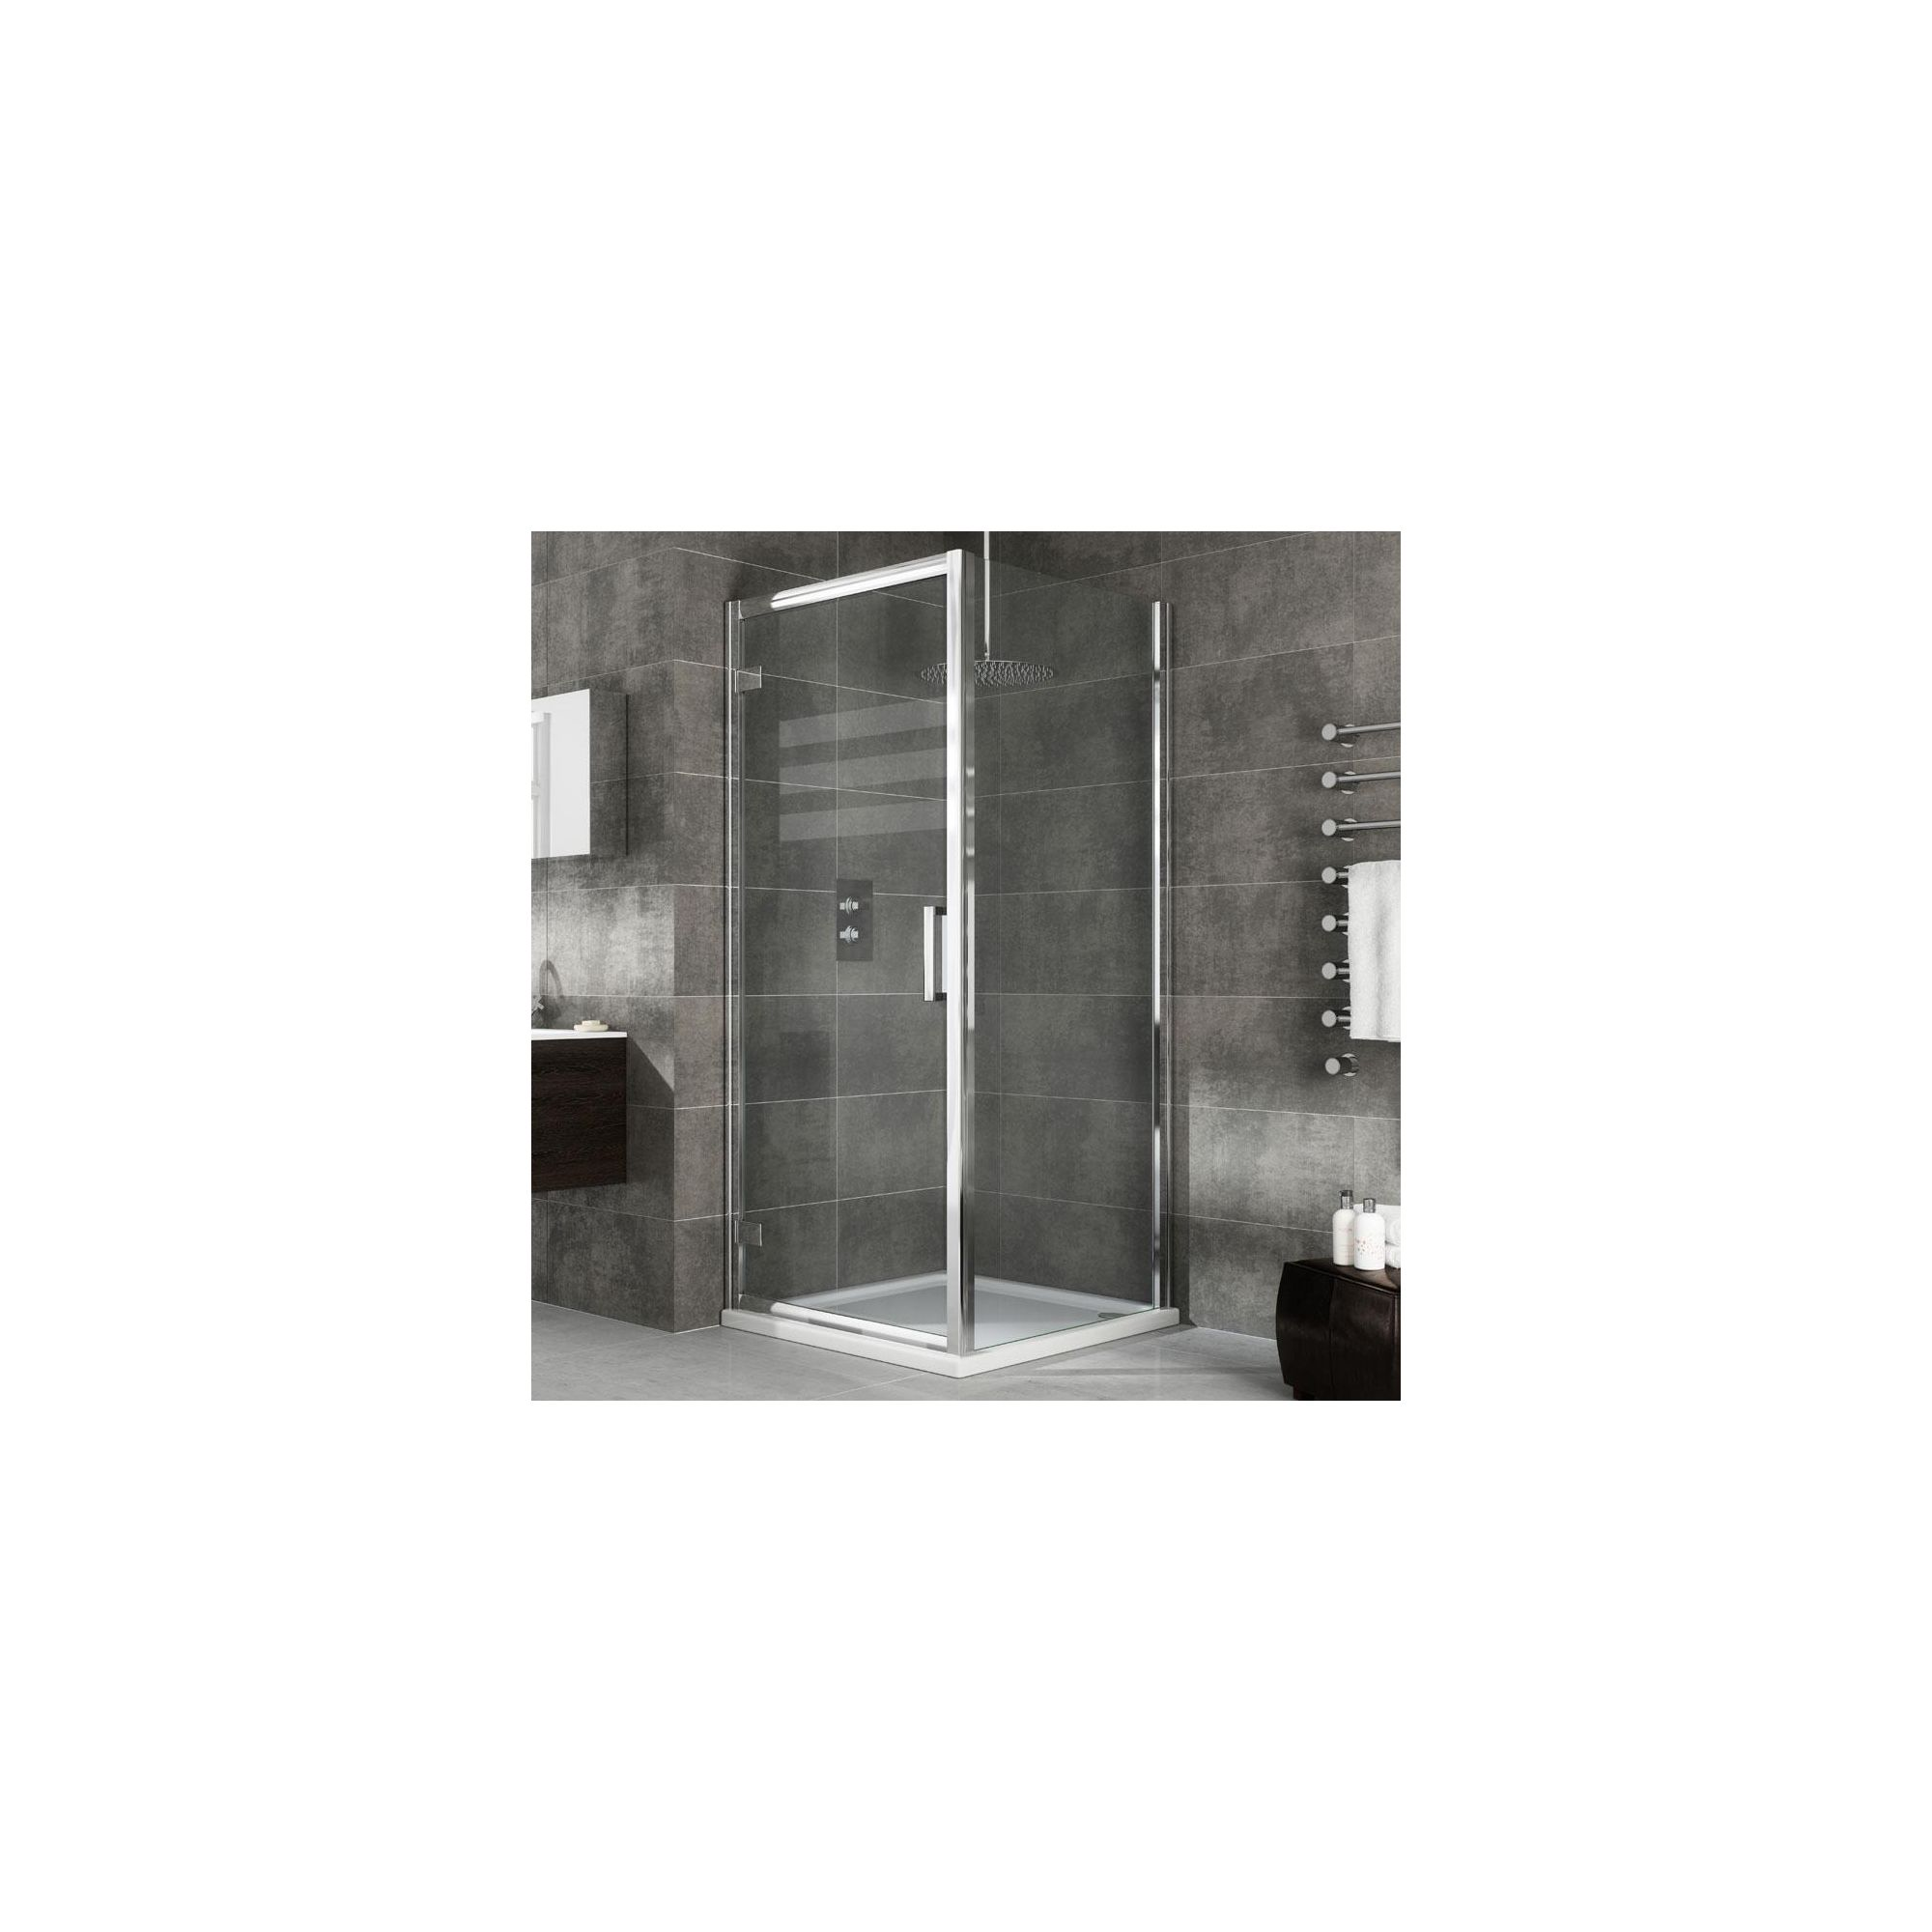 Elemis Eternity Hinged Shower Door, 800mm Wide, 8mm Glass at Tesco Direct